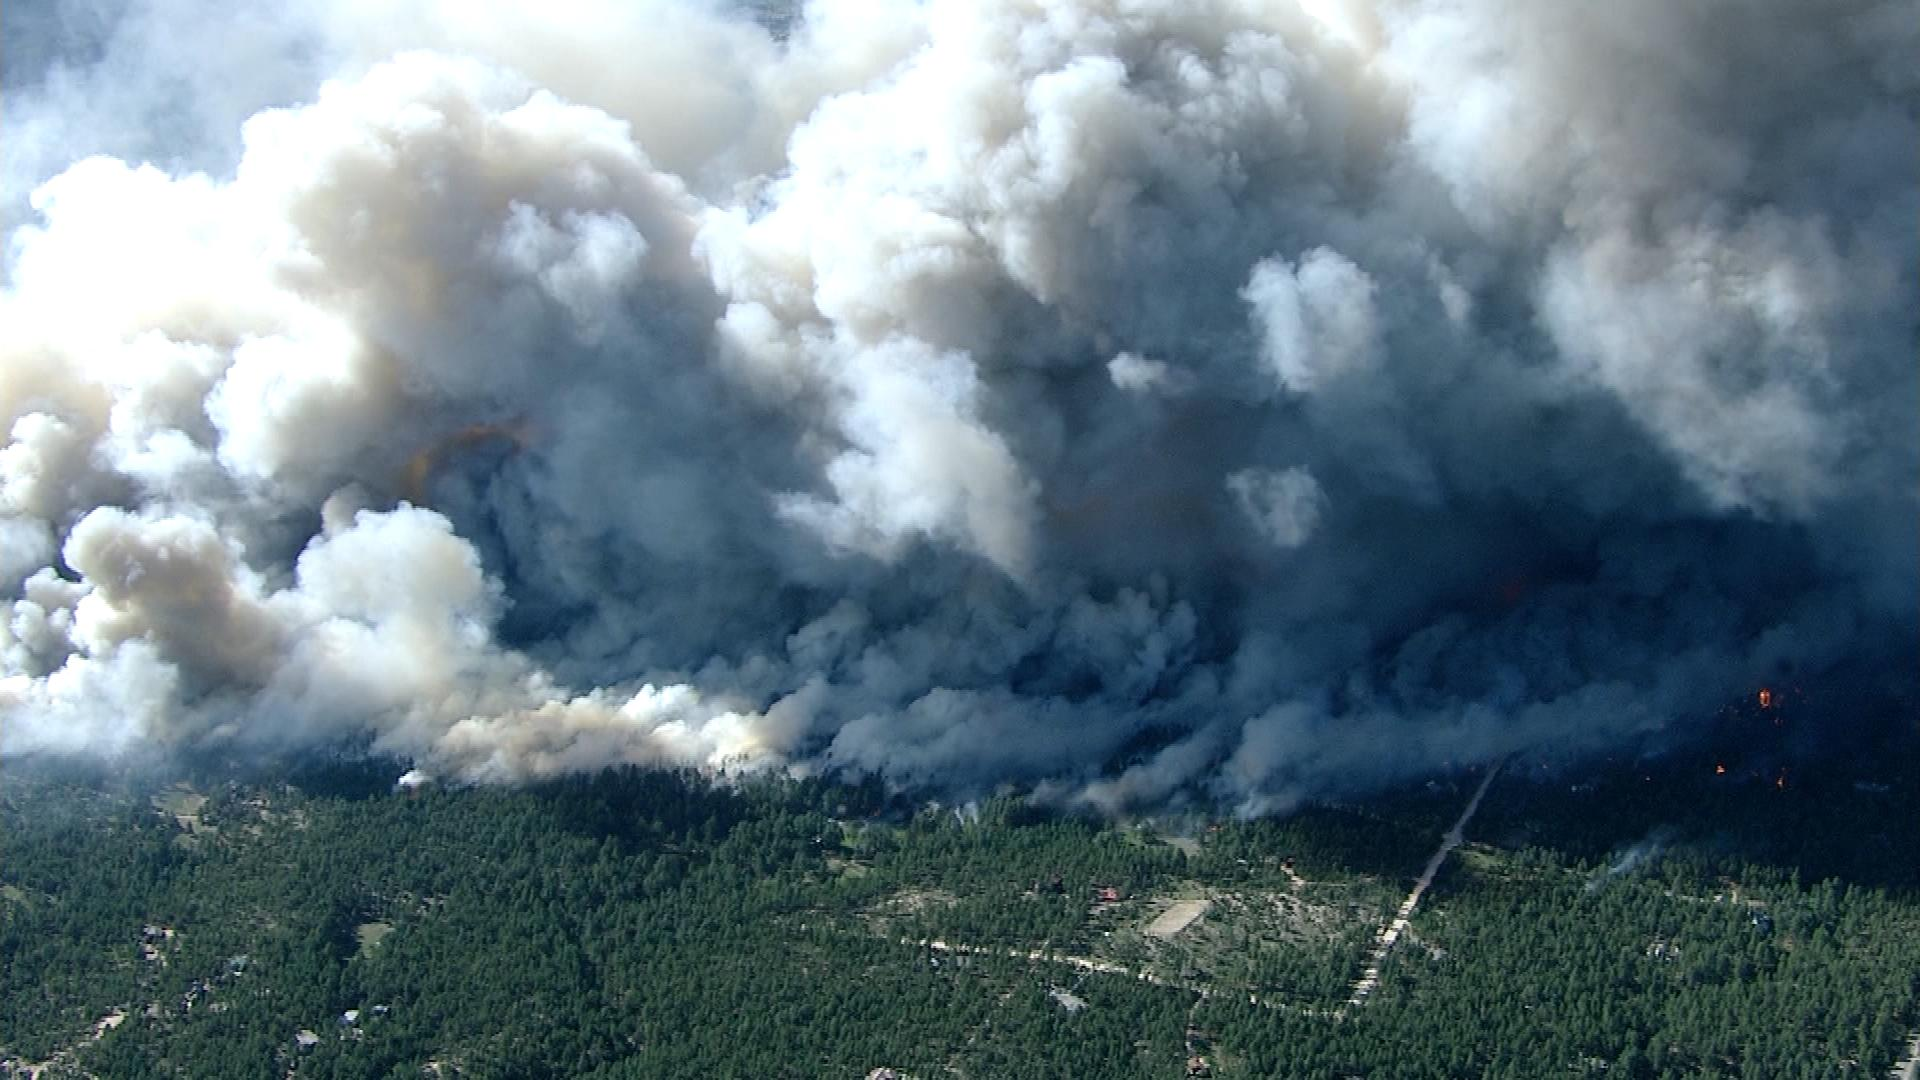 A wildfire in Washington state (credit: CBS)